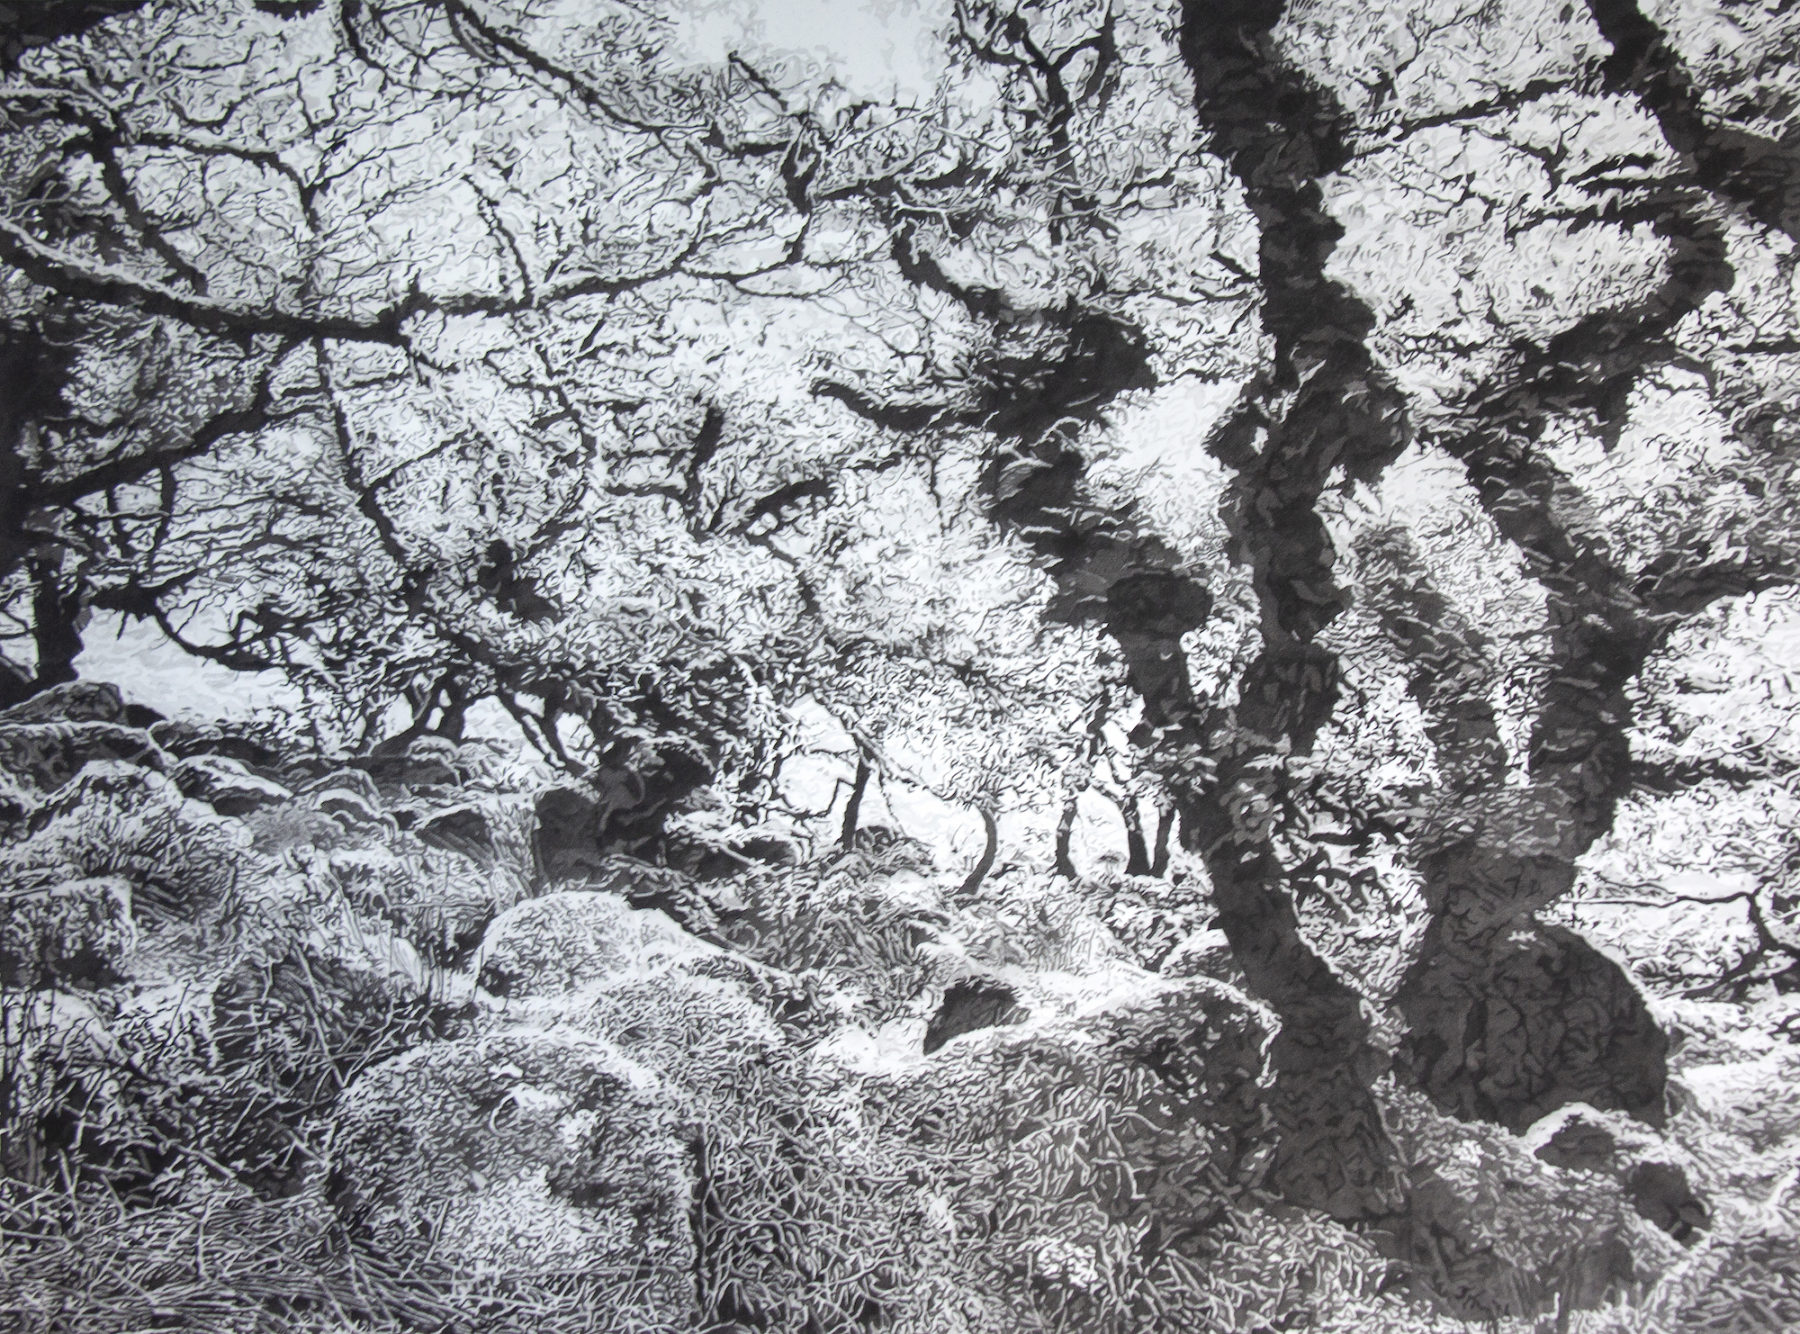 Old Friends is am immensely detailed black and white watercolour of the ancient Wistman's Wood. Twisted and gnarly dark tree branches reach for the sky, while thinner branches with delicately rendered grey leaves extend in different directions. The forest floor is strewn with lichen covered boulders.